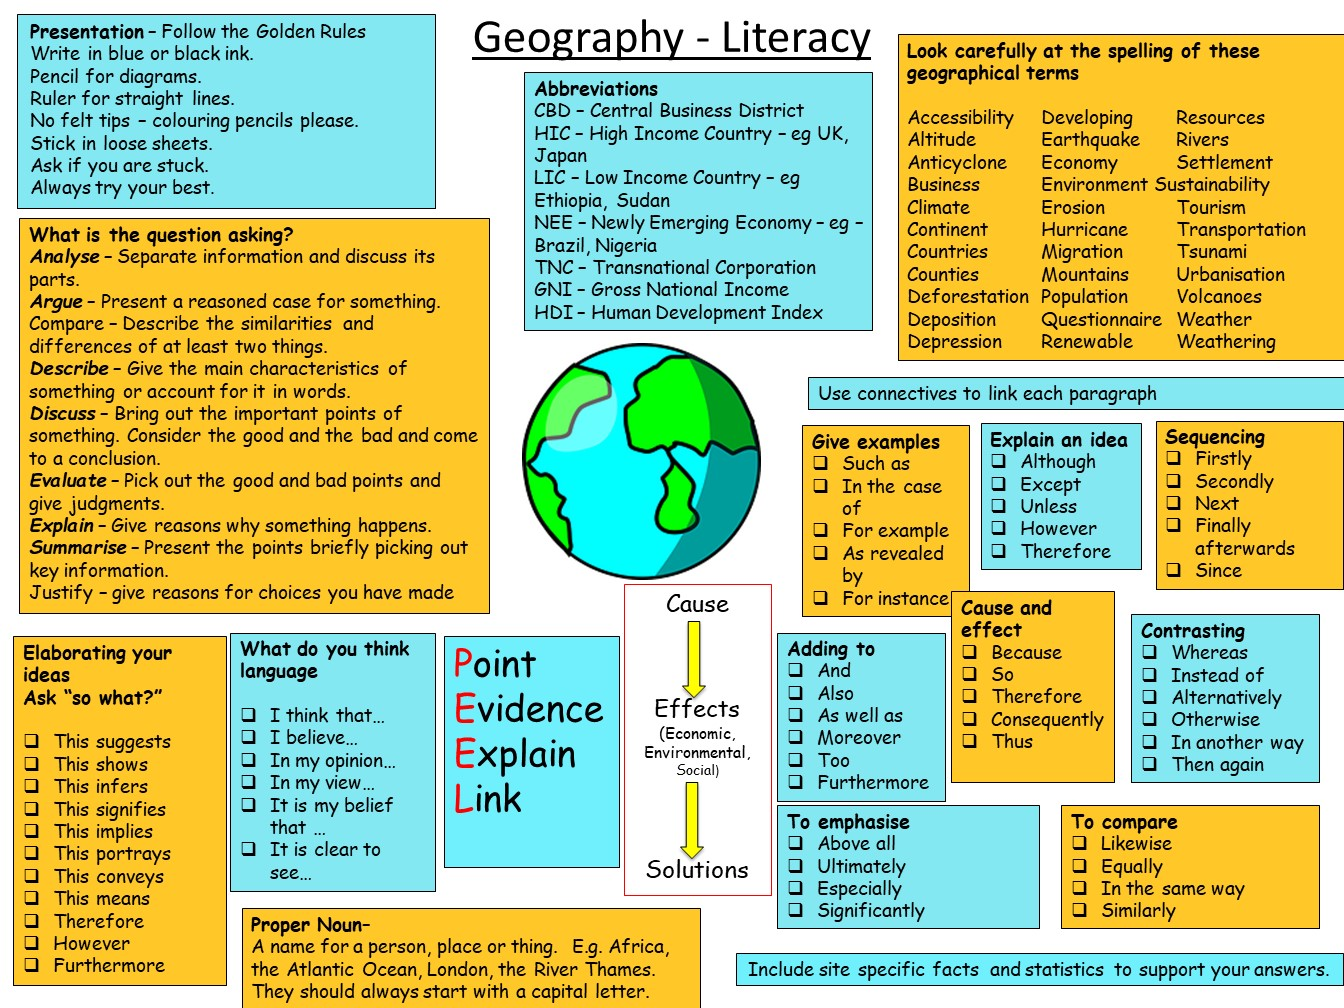 lacgeography